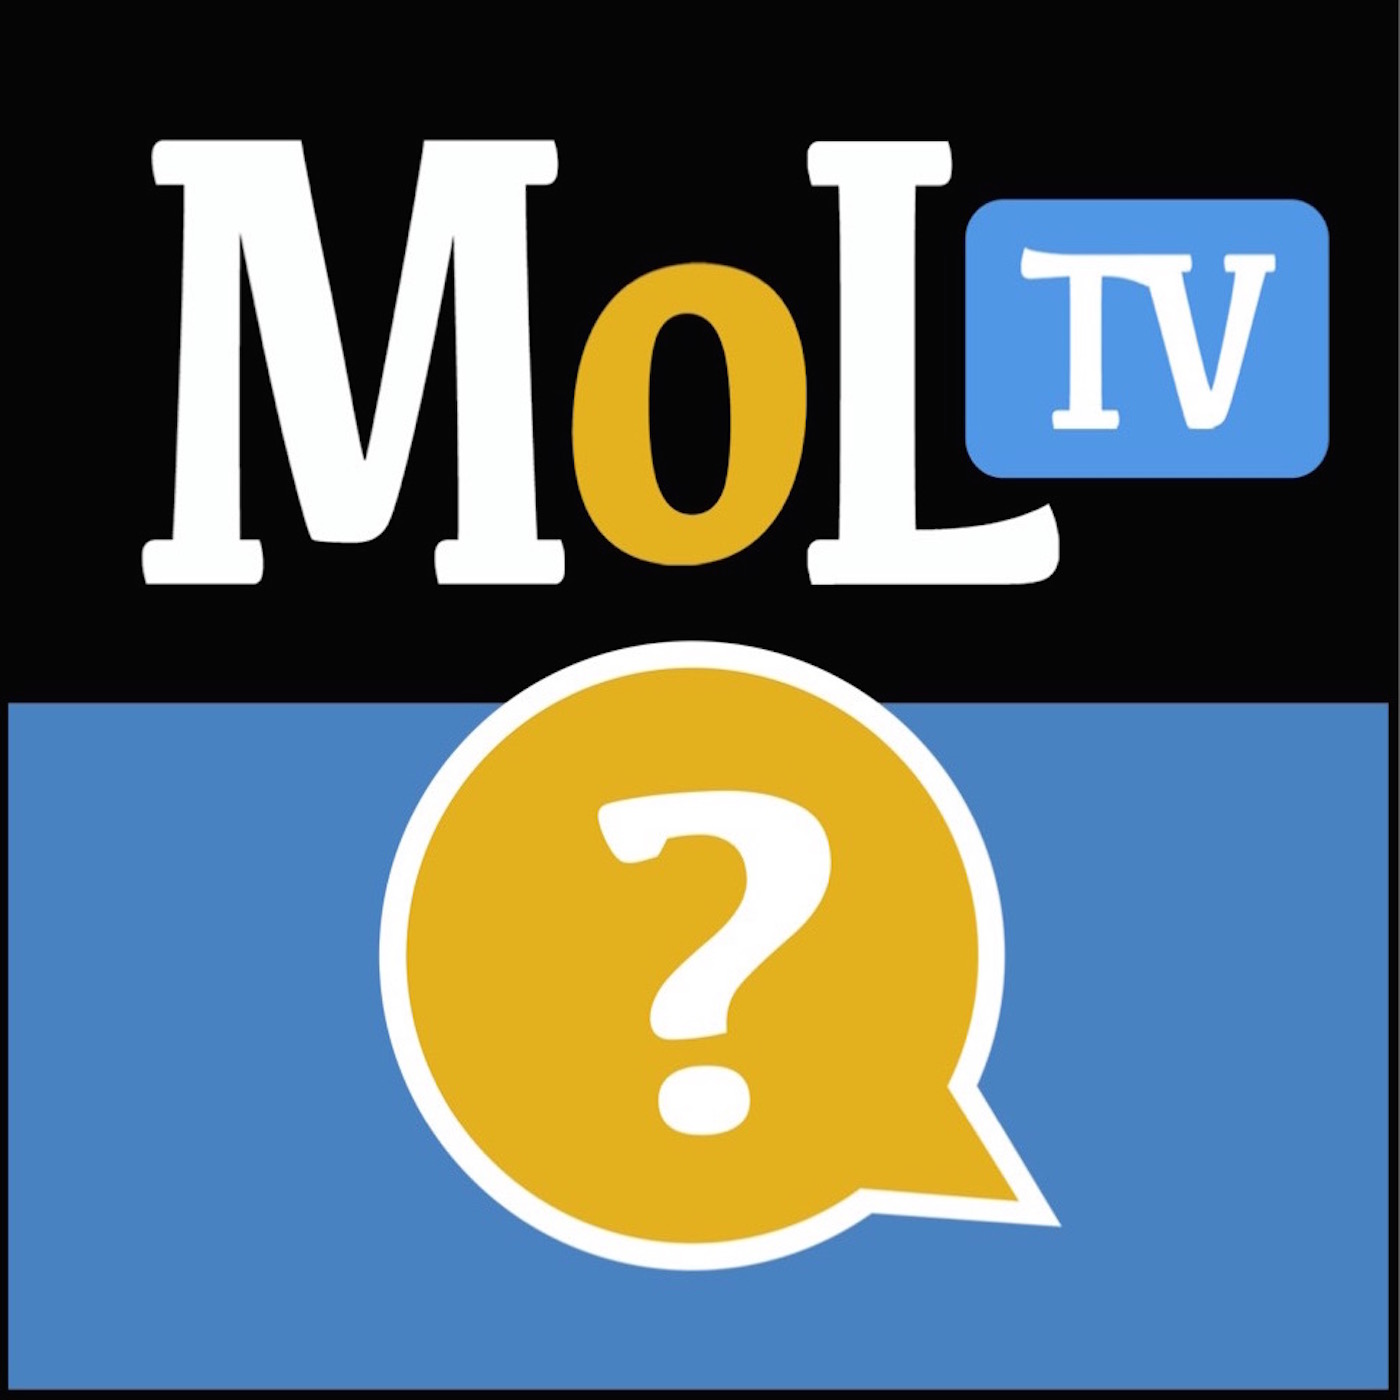 MoLtv (video)